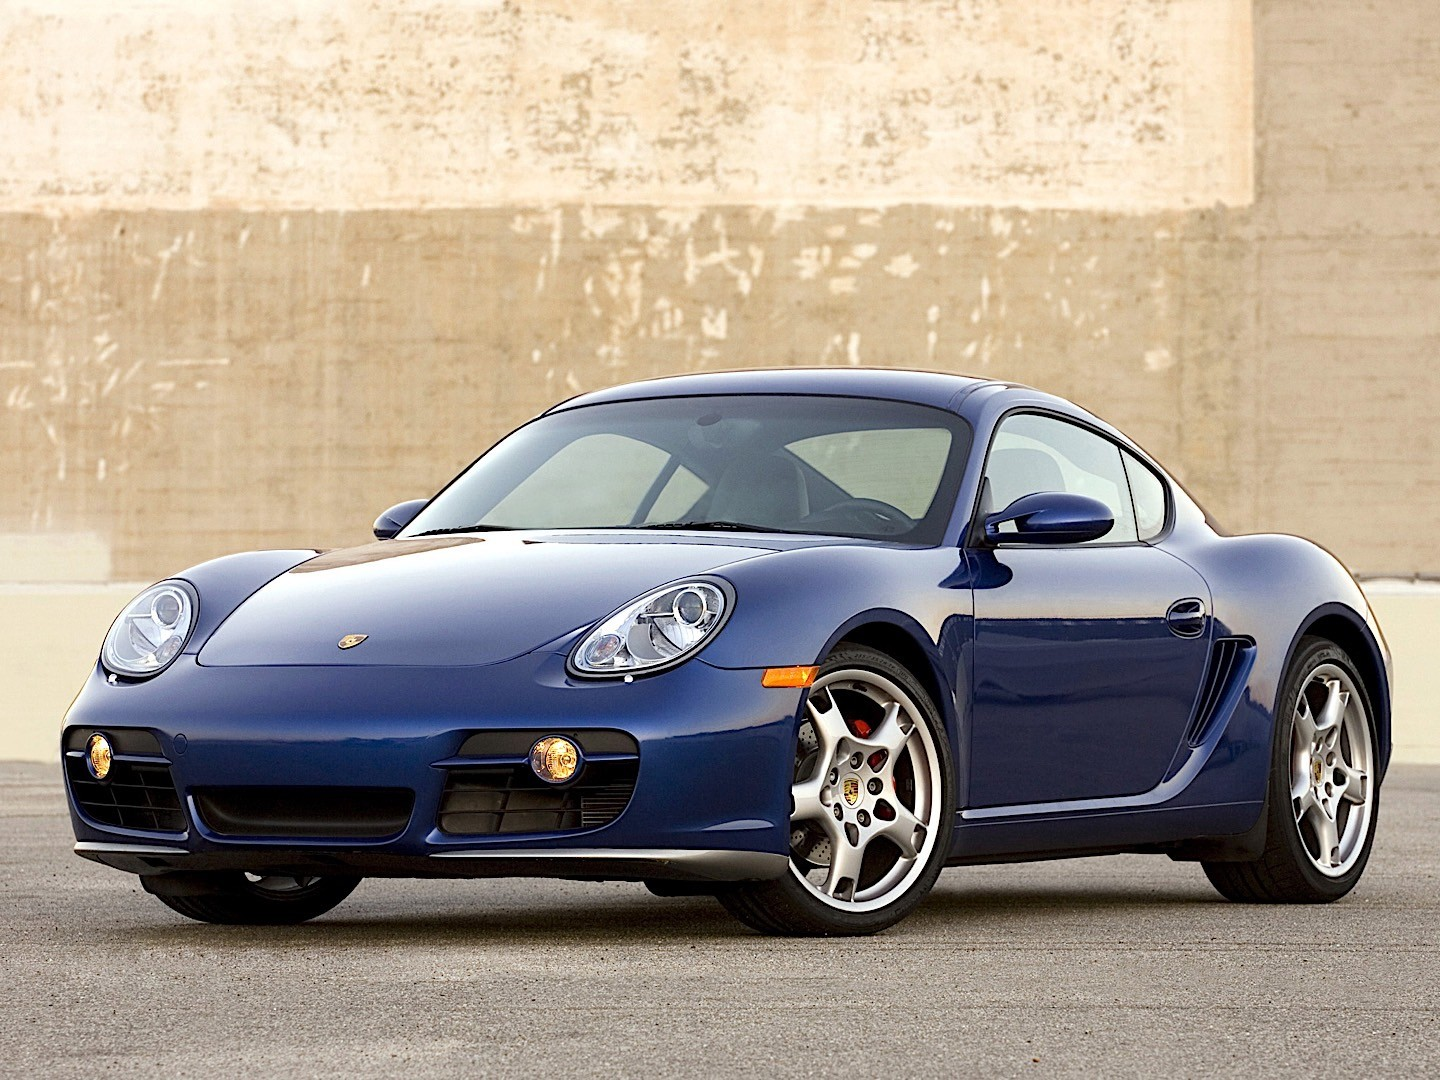 porsche cayman s 987 specs photos 2005 2006 2007 2008 autoevolution. Black Bedroom Furniture Sets. Home Design Ideas